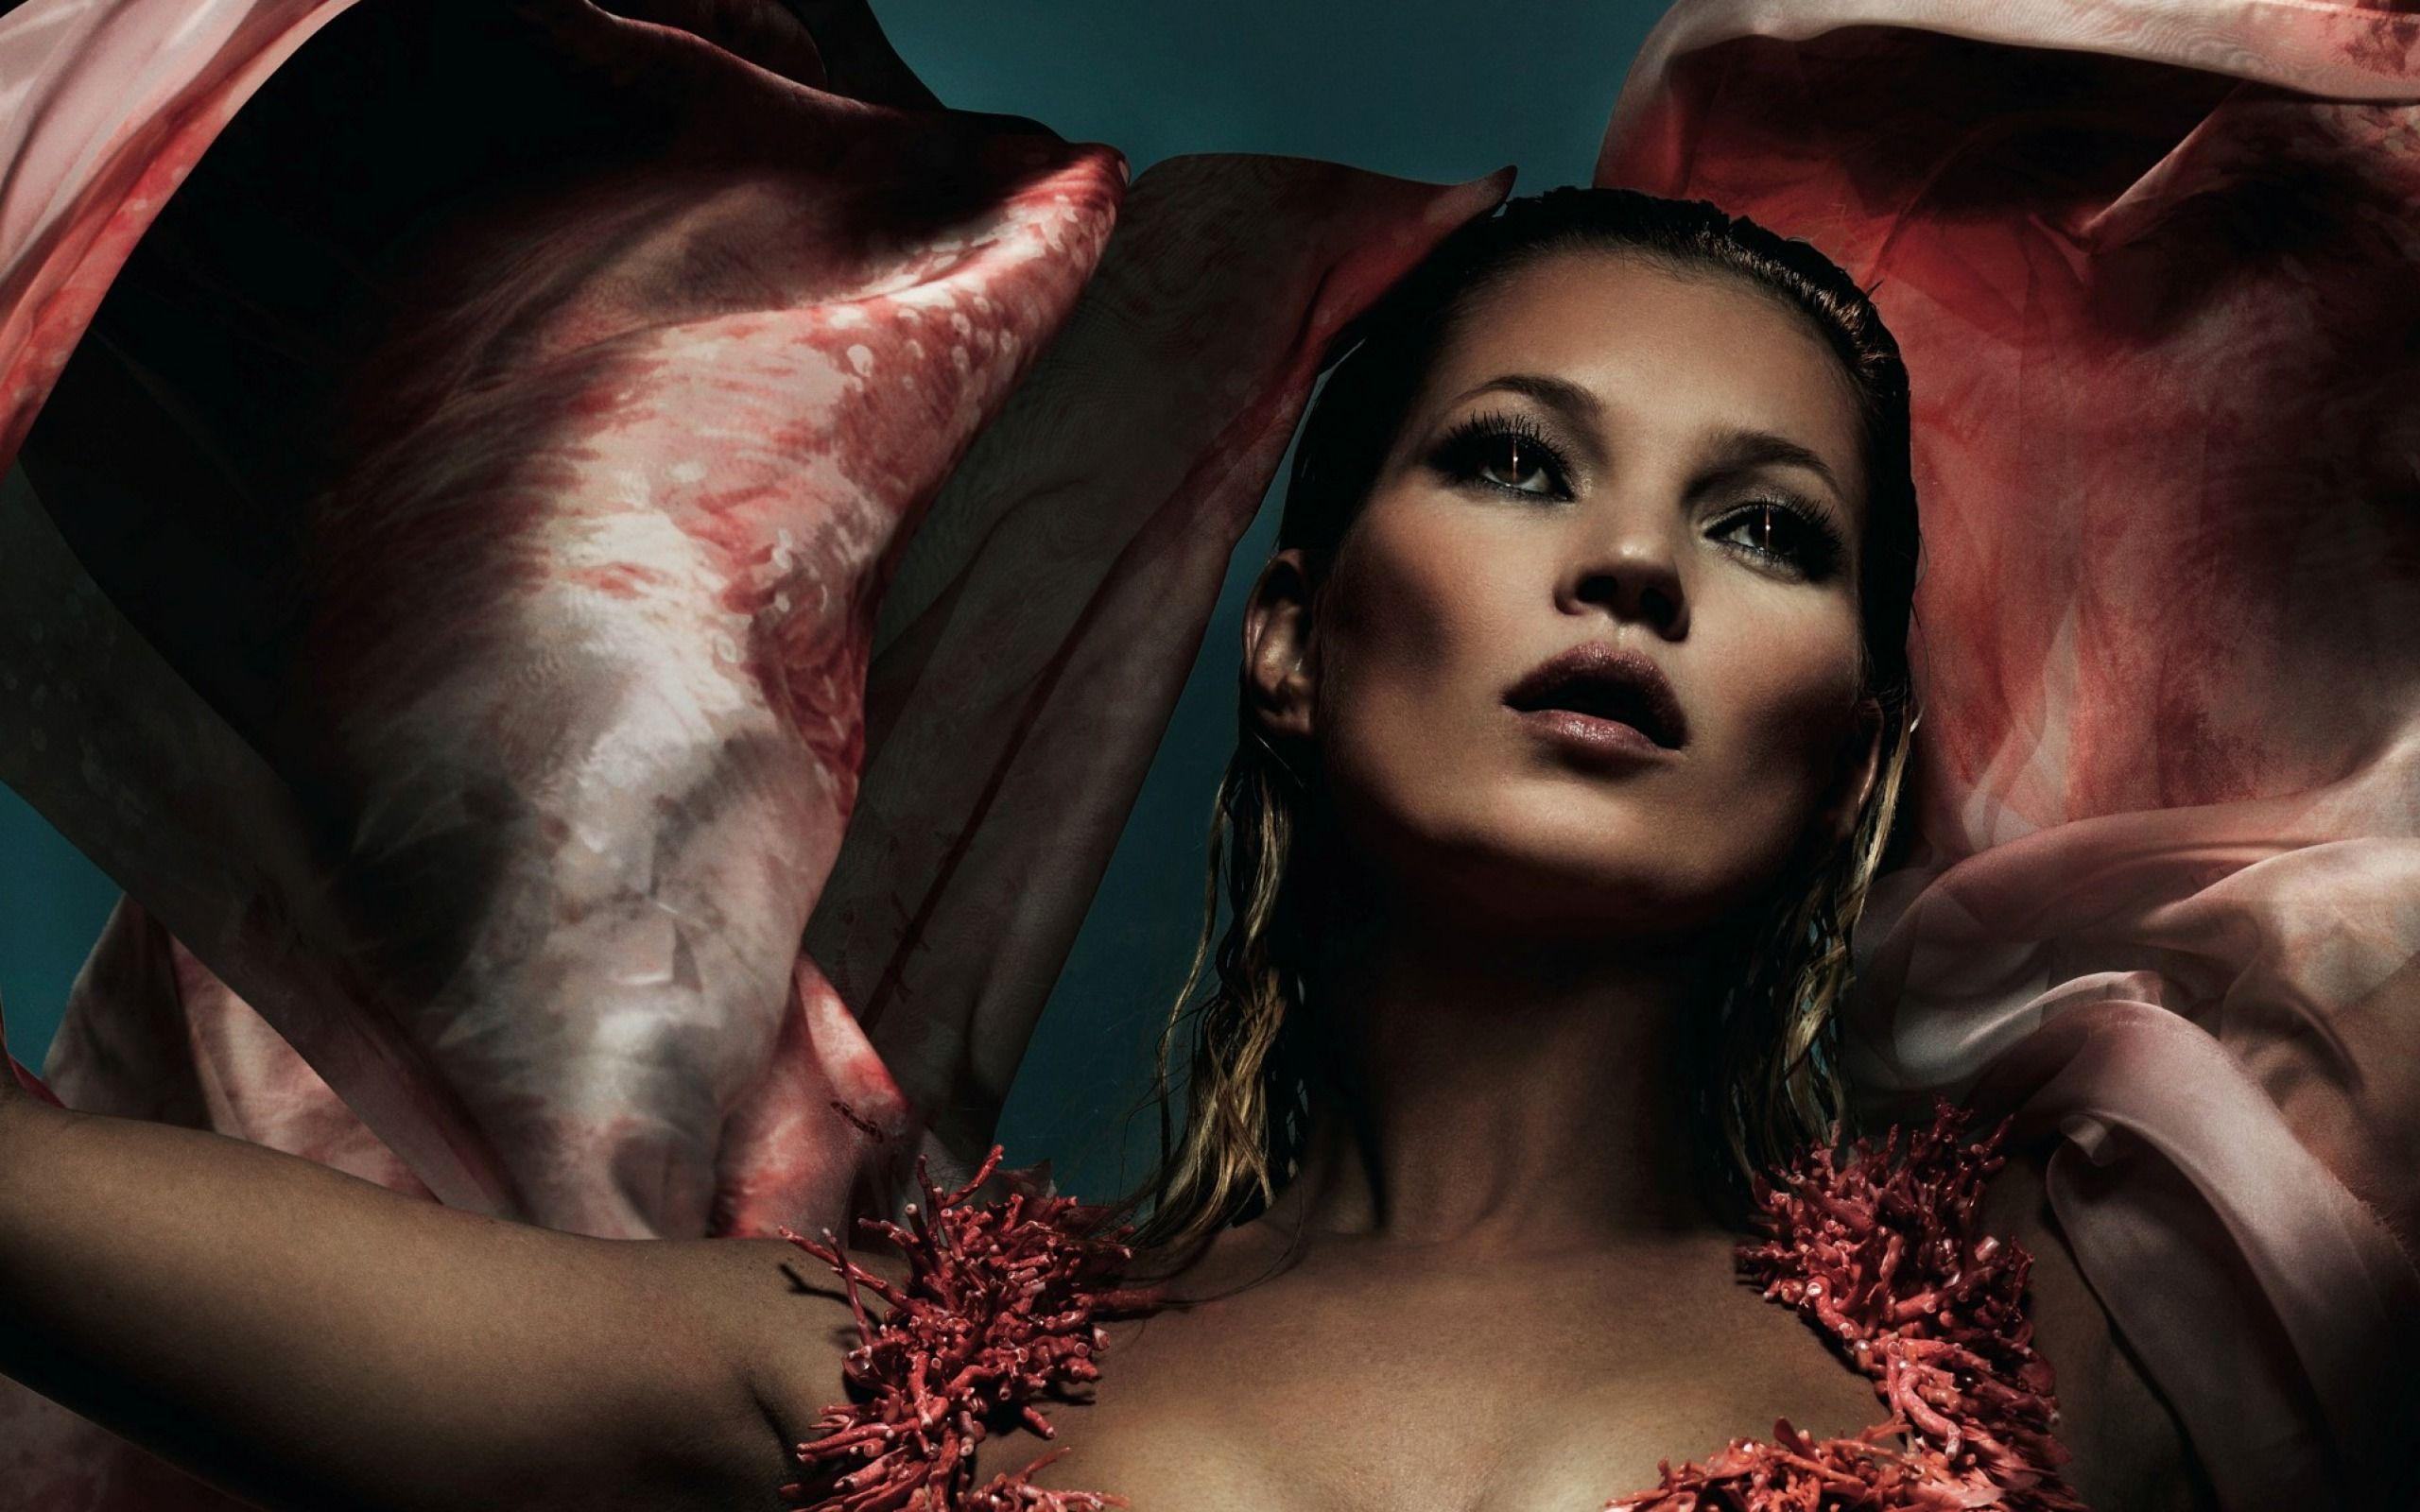 Kate Moss Computer Wallpapers, Desktop Backgrounds 2560x1600 Id